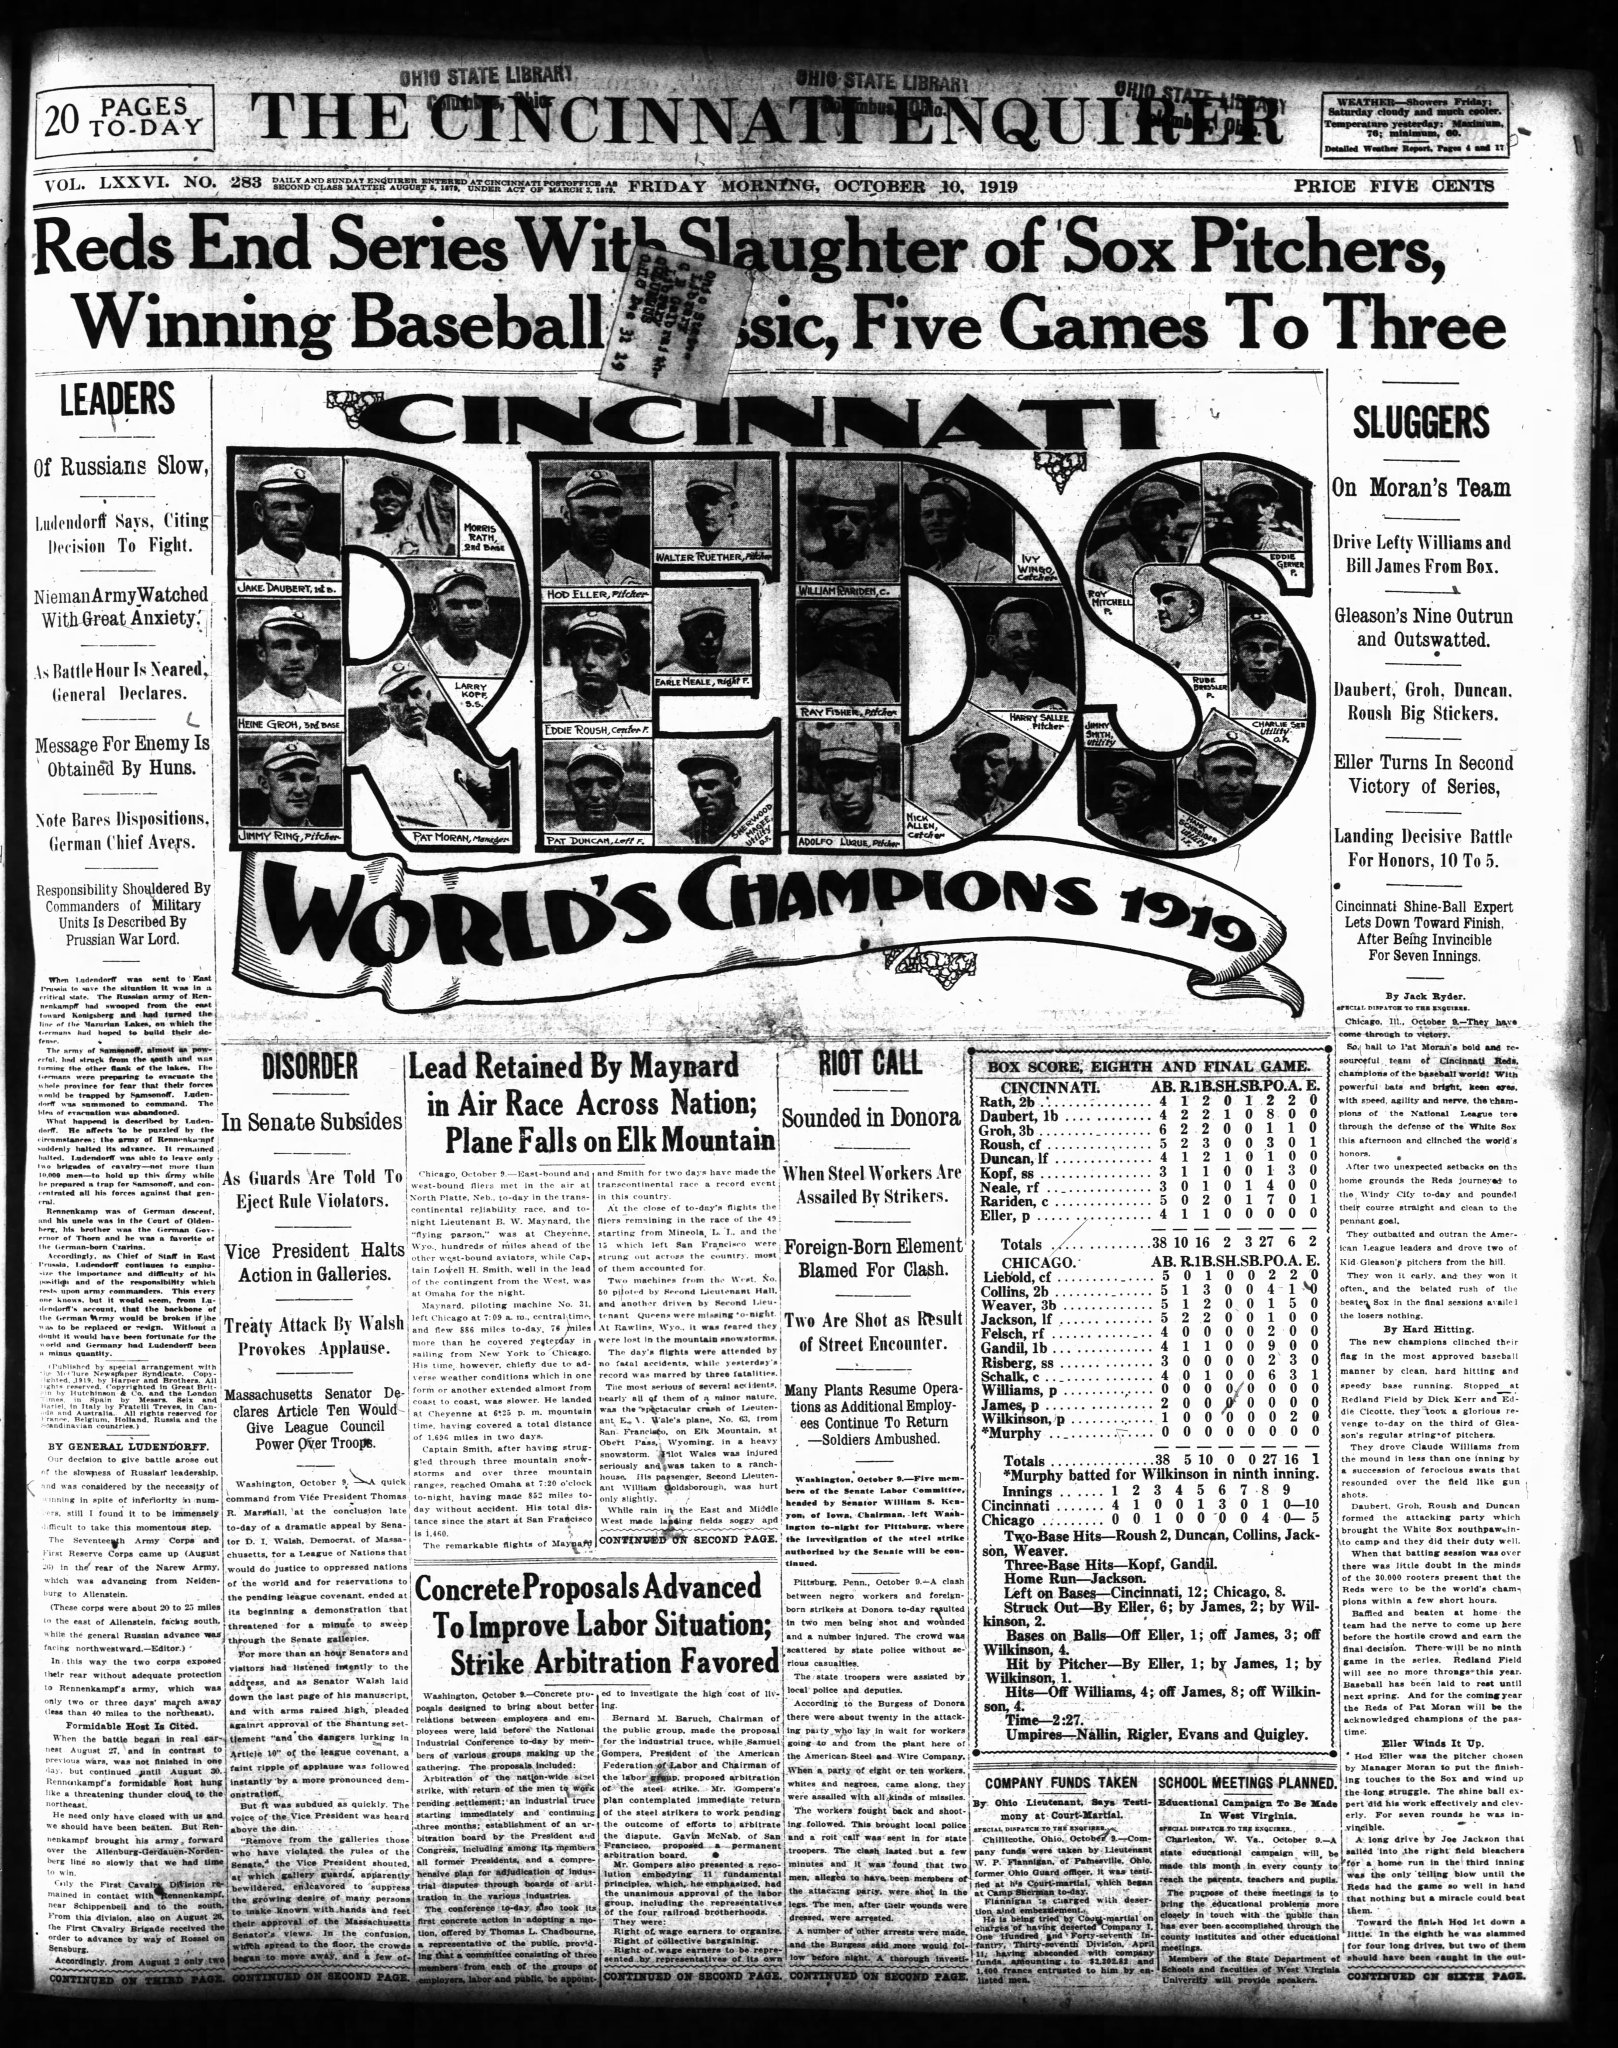 "#OTD 100 years ago at Comiskey Park, the Cincinnati Reds are World Champs trouncing Chicago White Sox 10-5 to win 1919 World Series (best of 9) in 8 games. Soon cries of ""the fix is in!"" would turn the baseball world upside down and result in lifetime bans for 8 White Sox players https://t.co/9QhnWb7wXy"